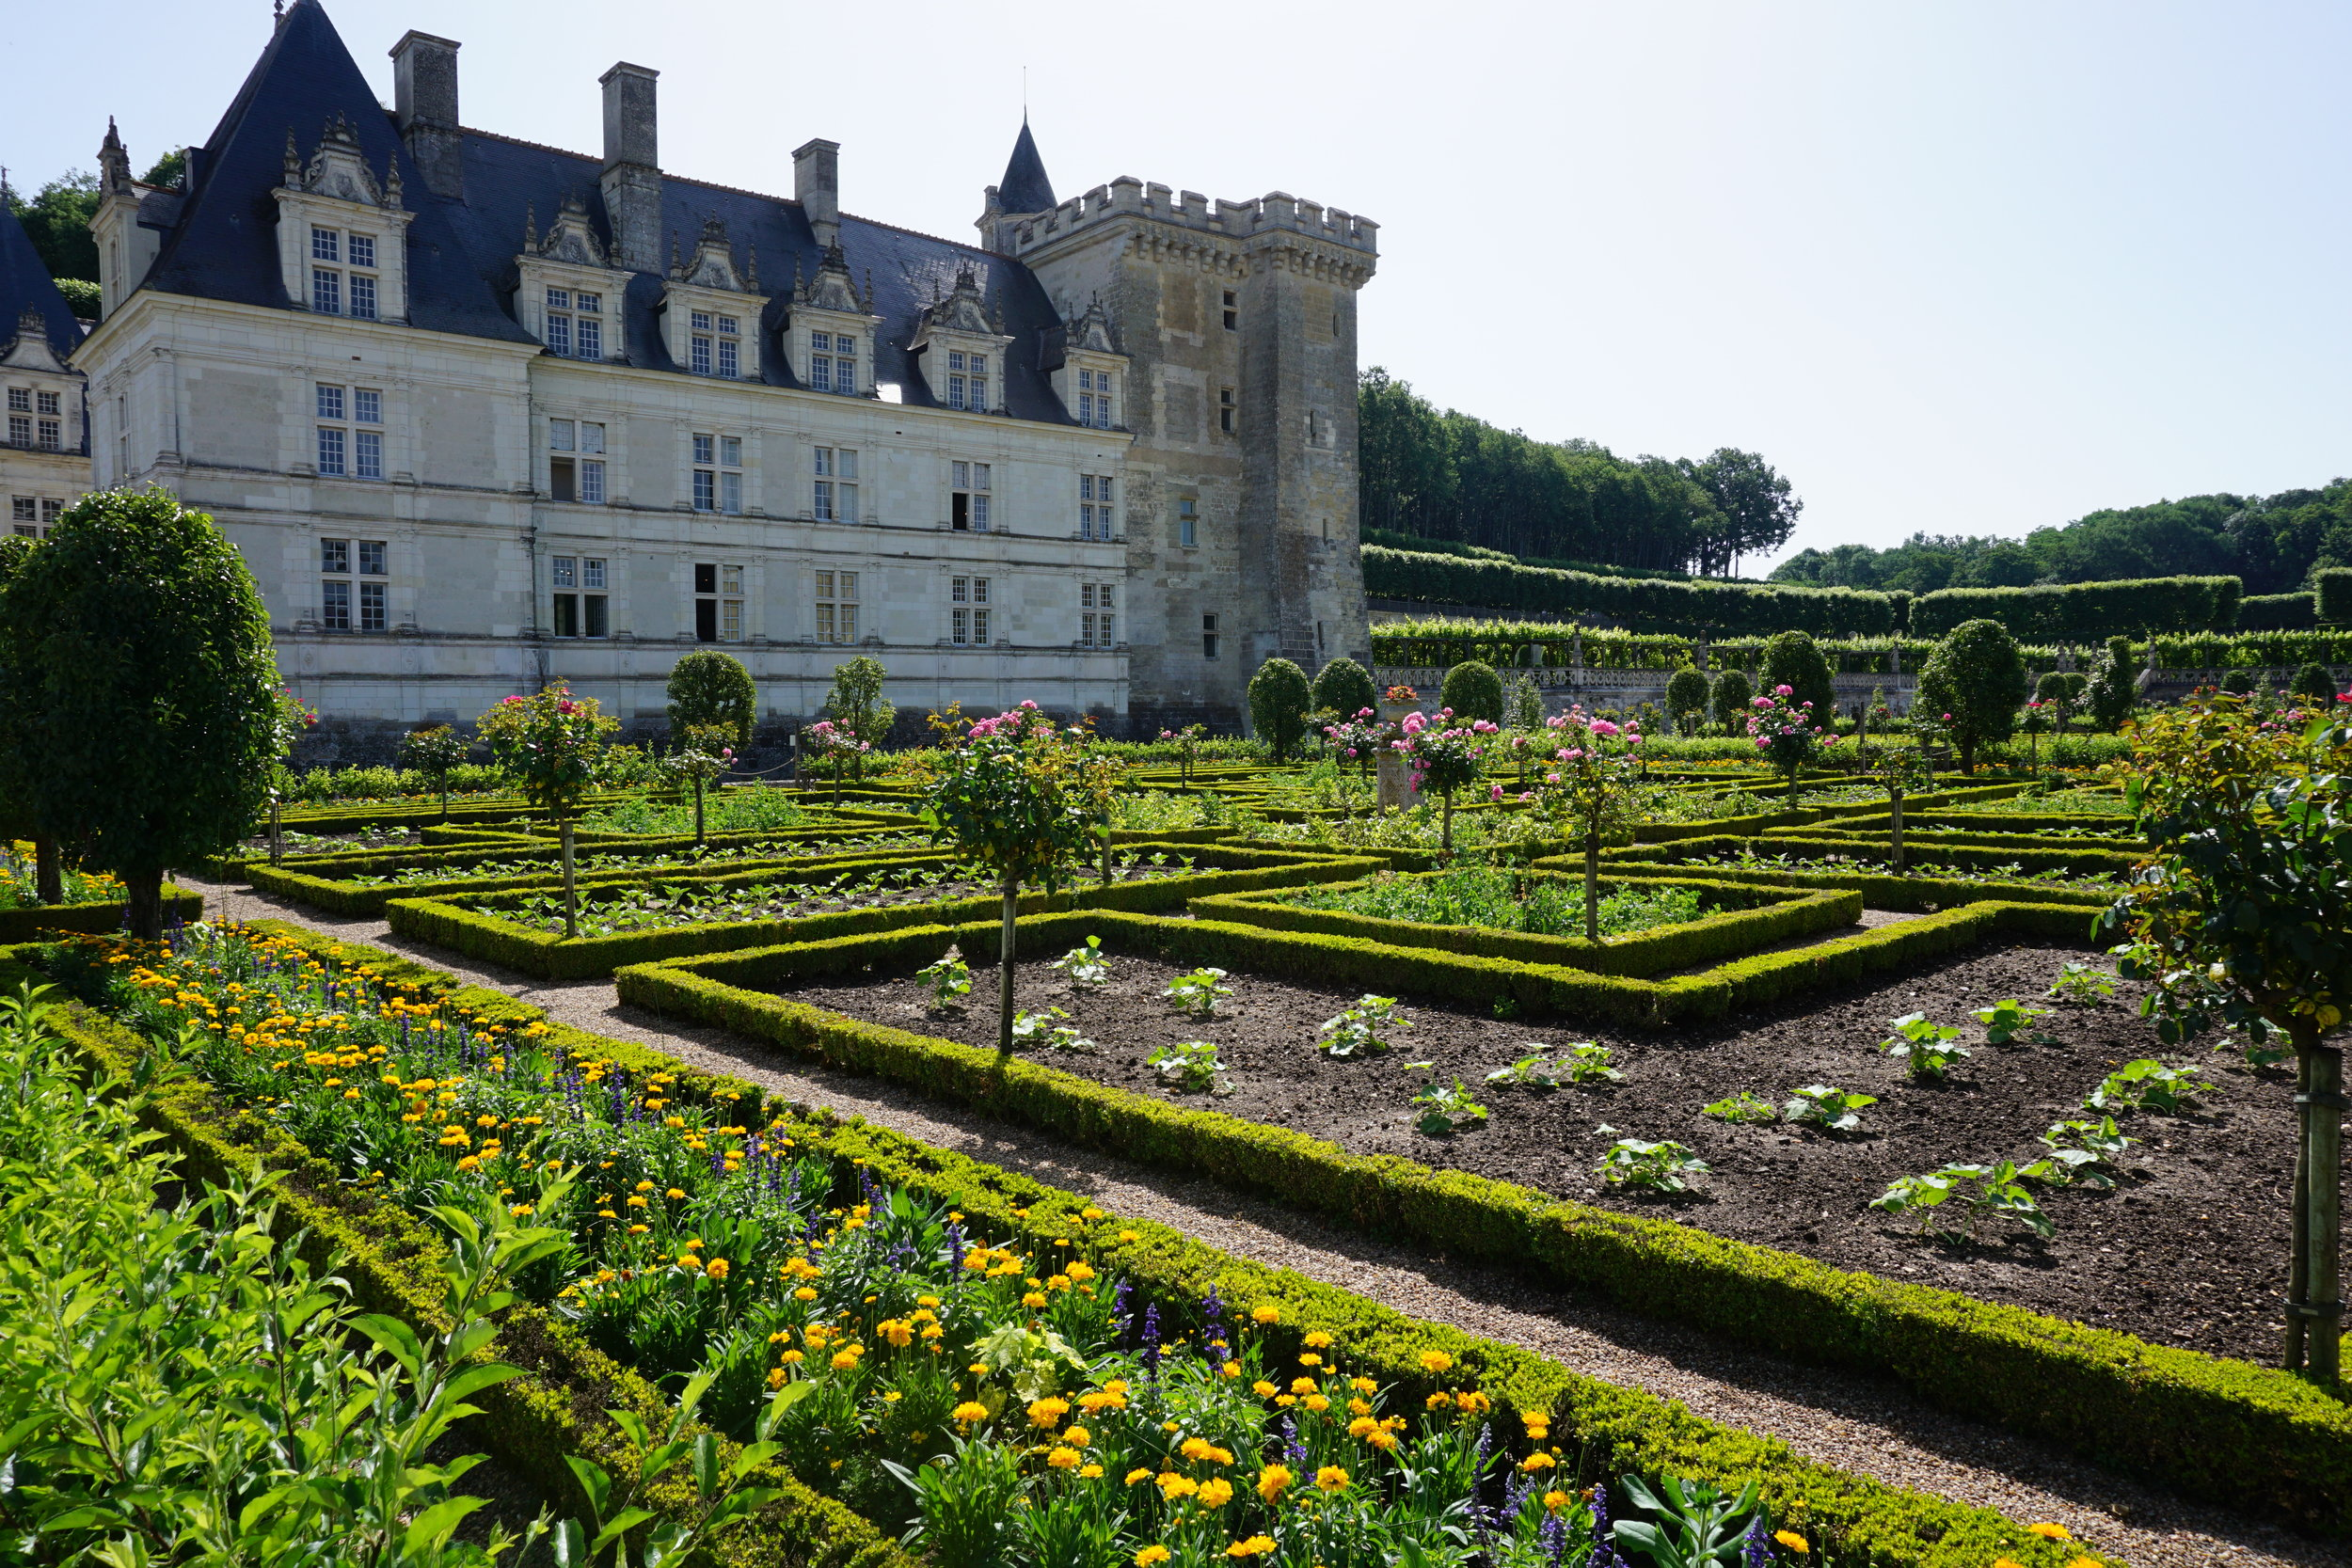 A stunning display of boxwood hedges at the Chateau de Villandry in France.